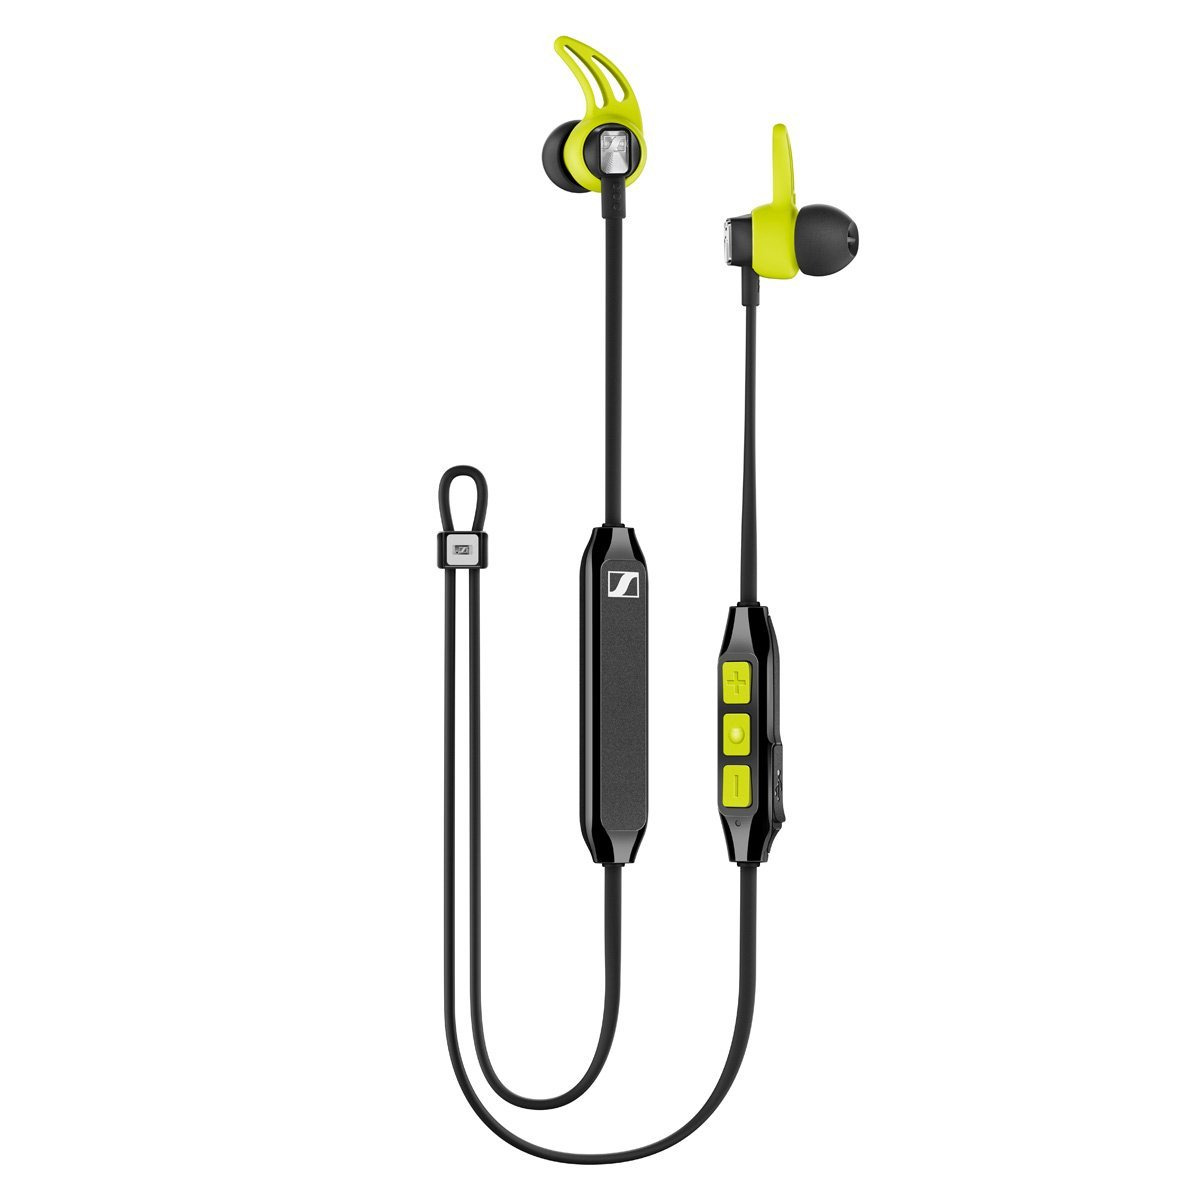 Sennheiser CX SPORT Sports headphones